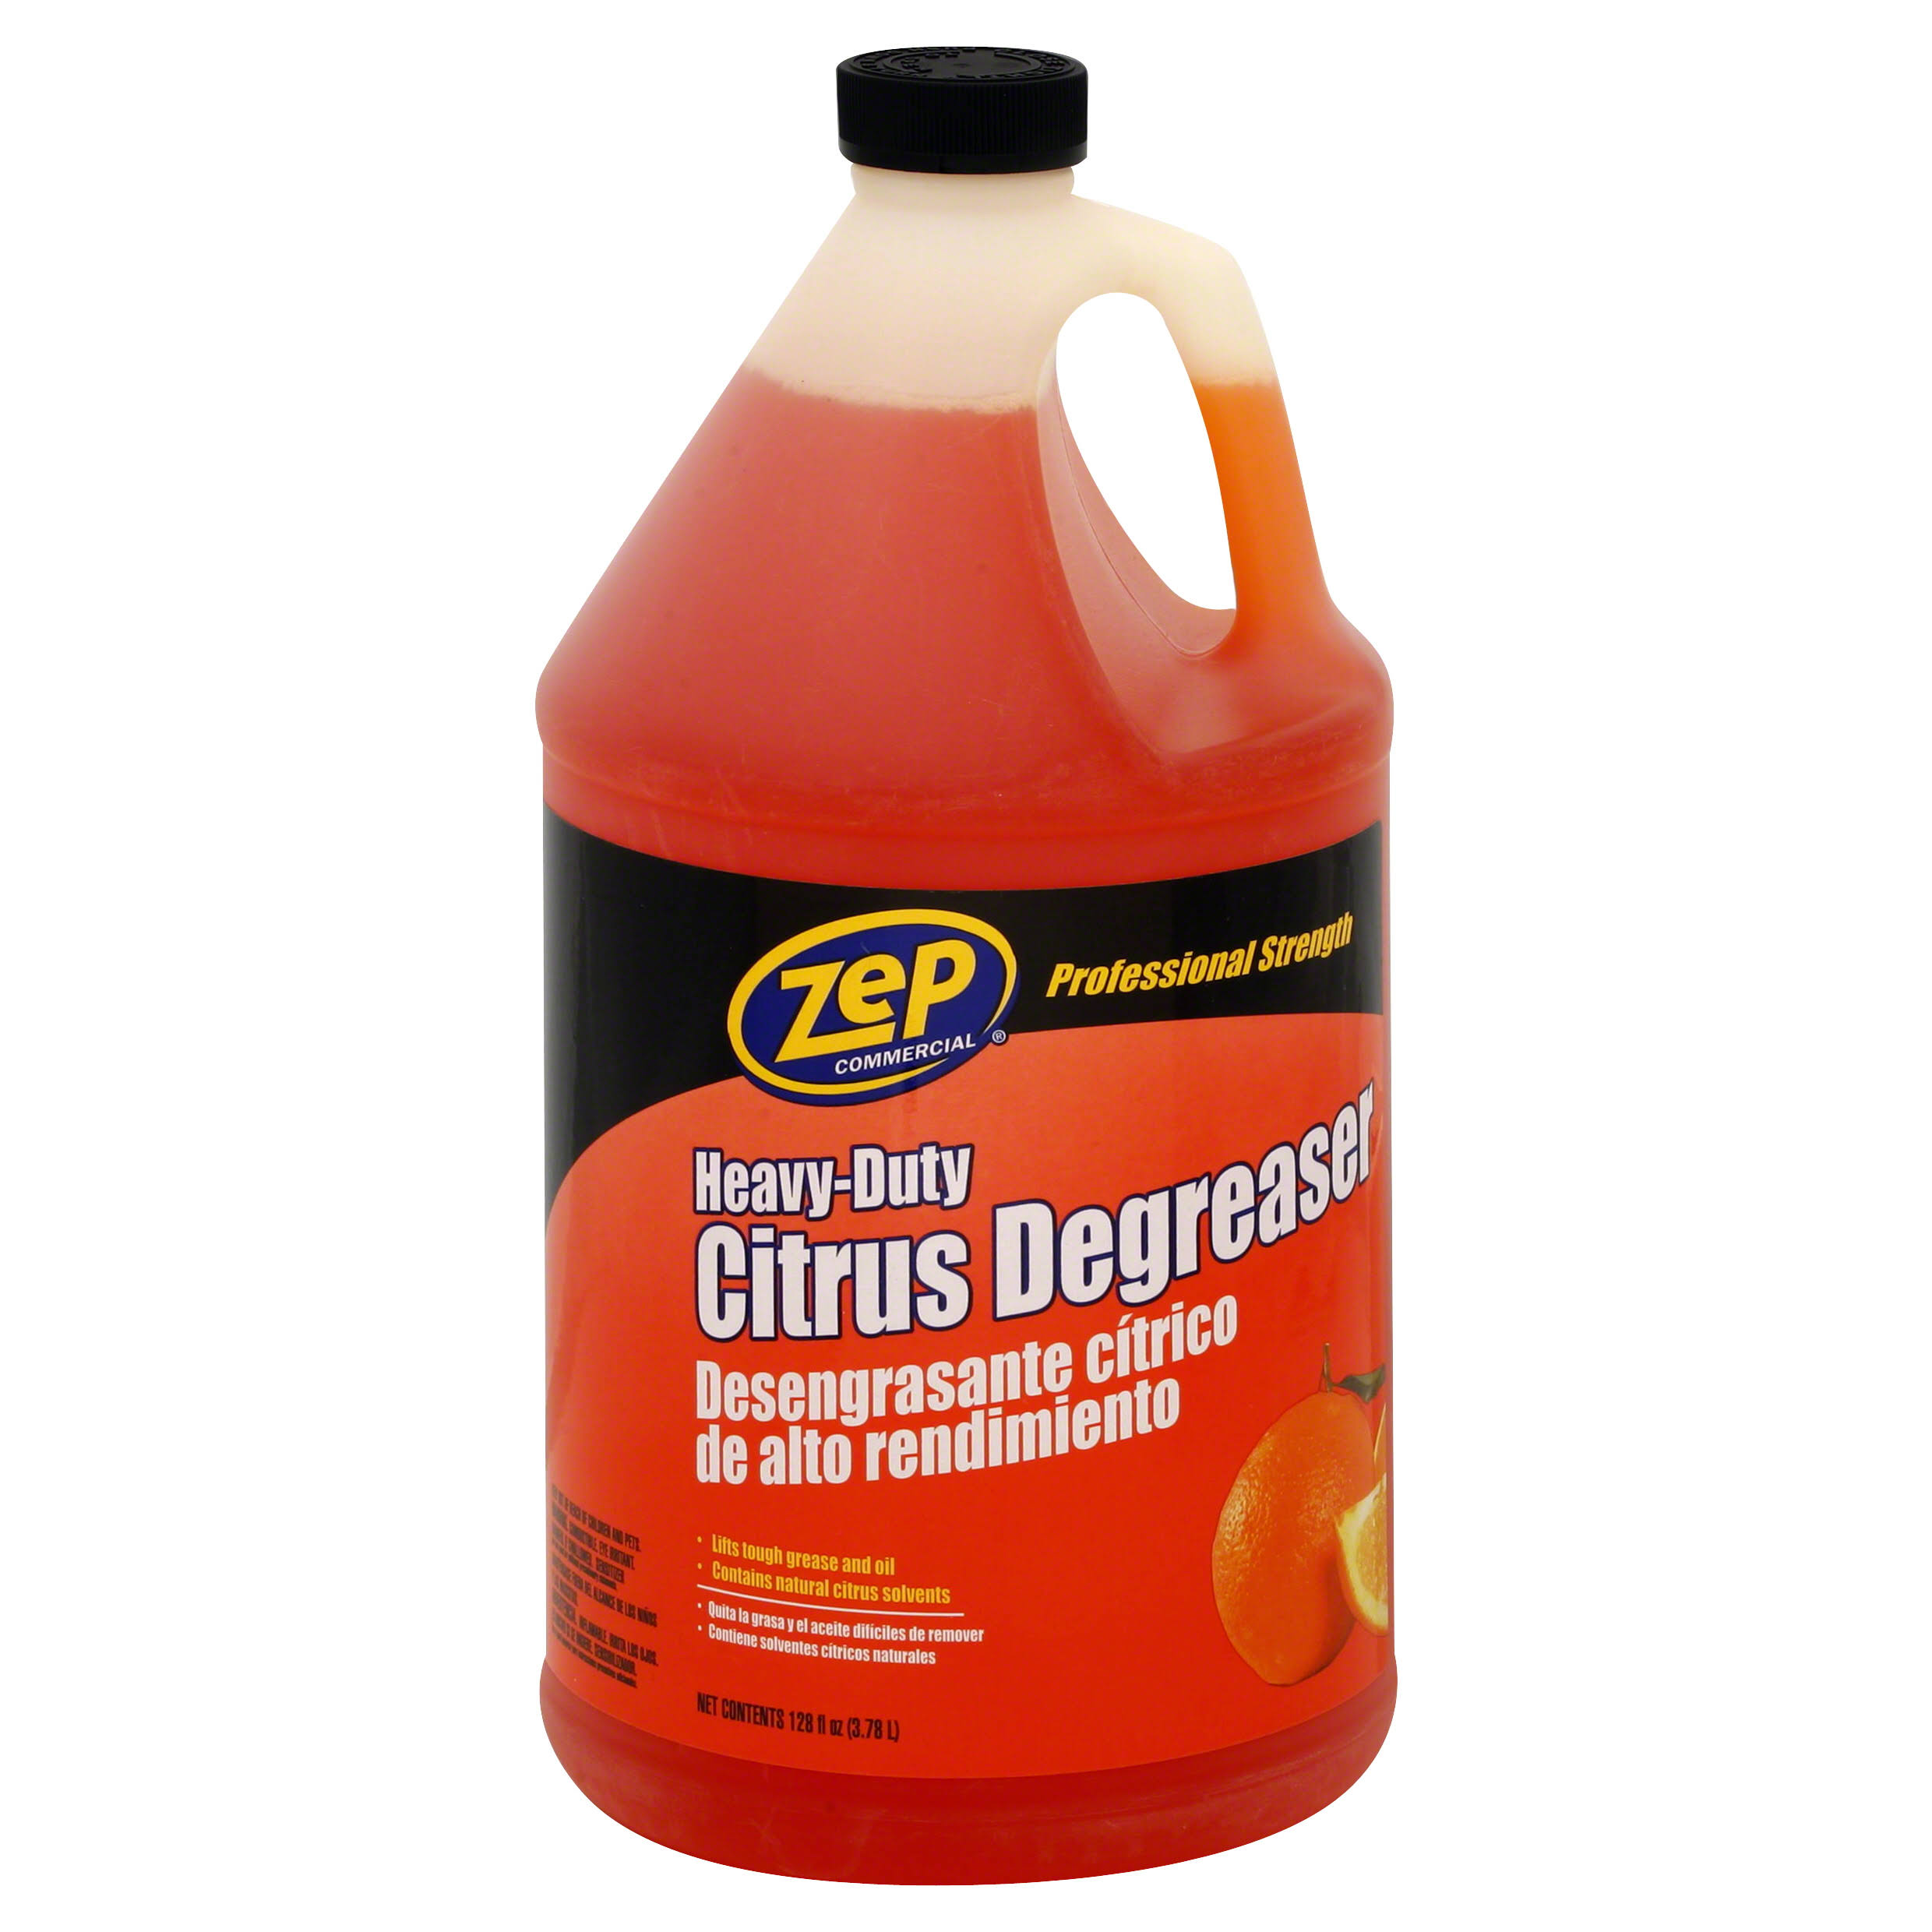 Zep Commercial Heavy Duty Citrus Degreaser - Citrus Scent, 128oz